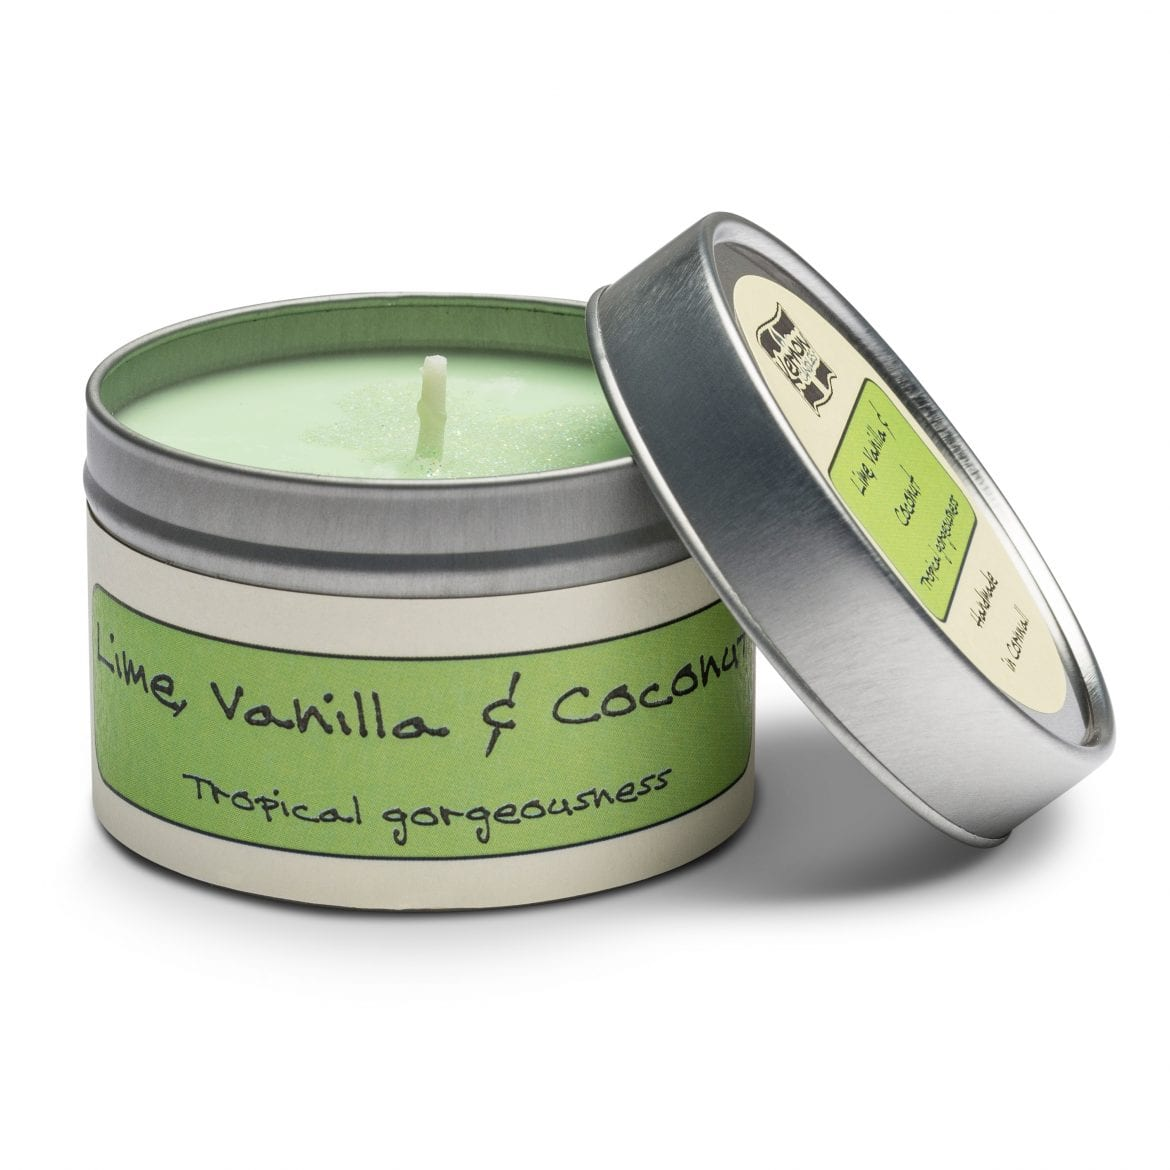 lime-vanilla-coconut-candle.jpg